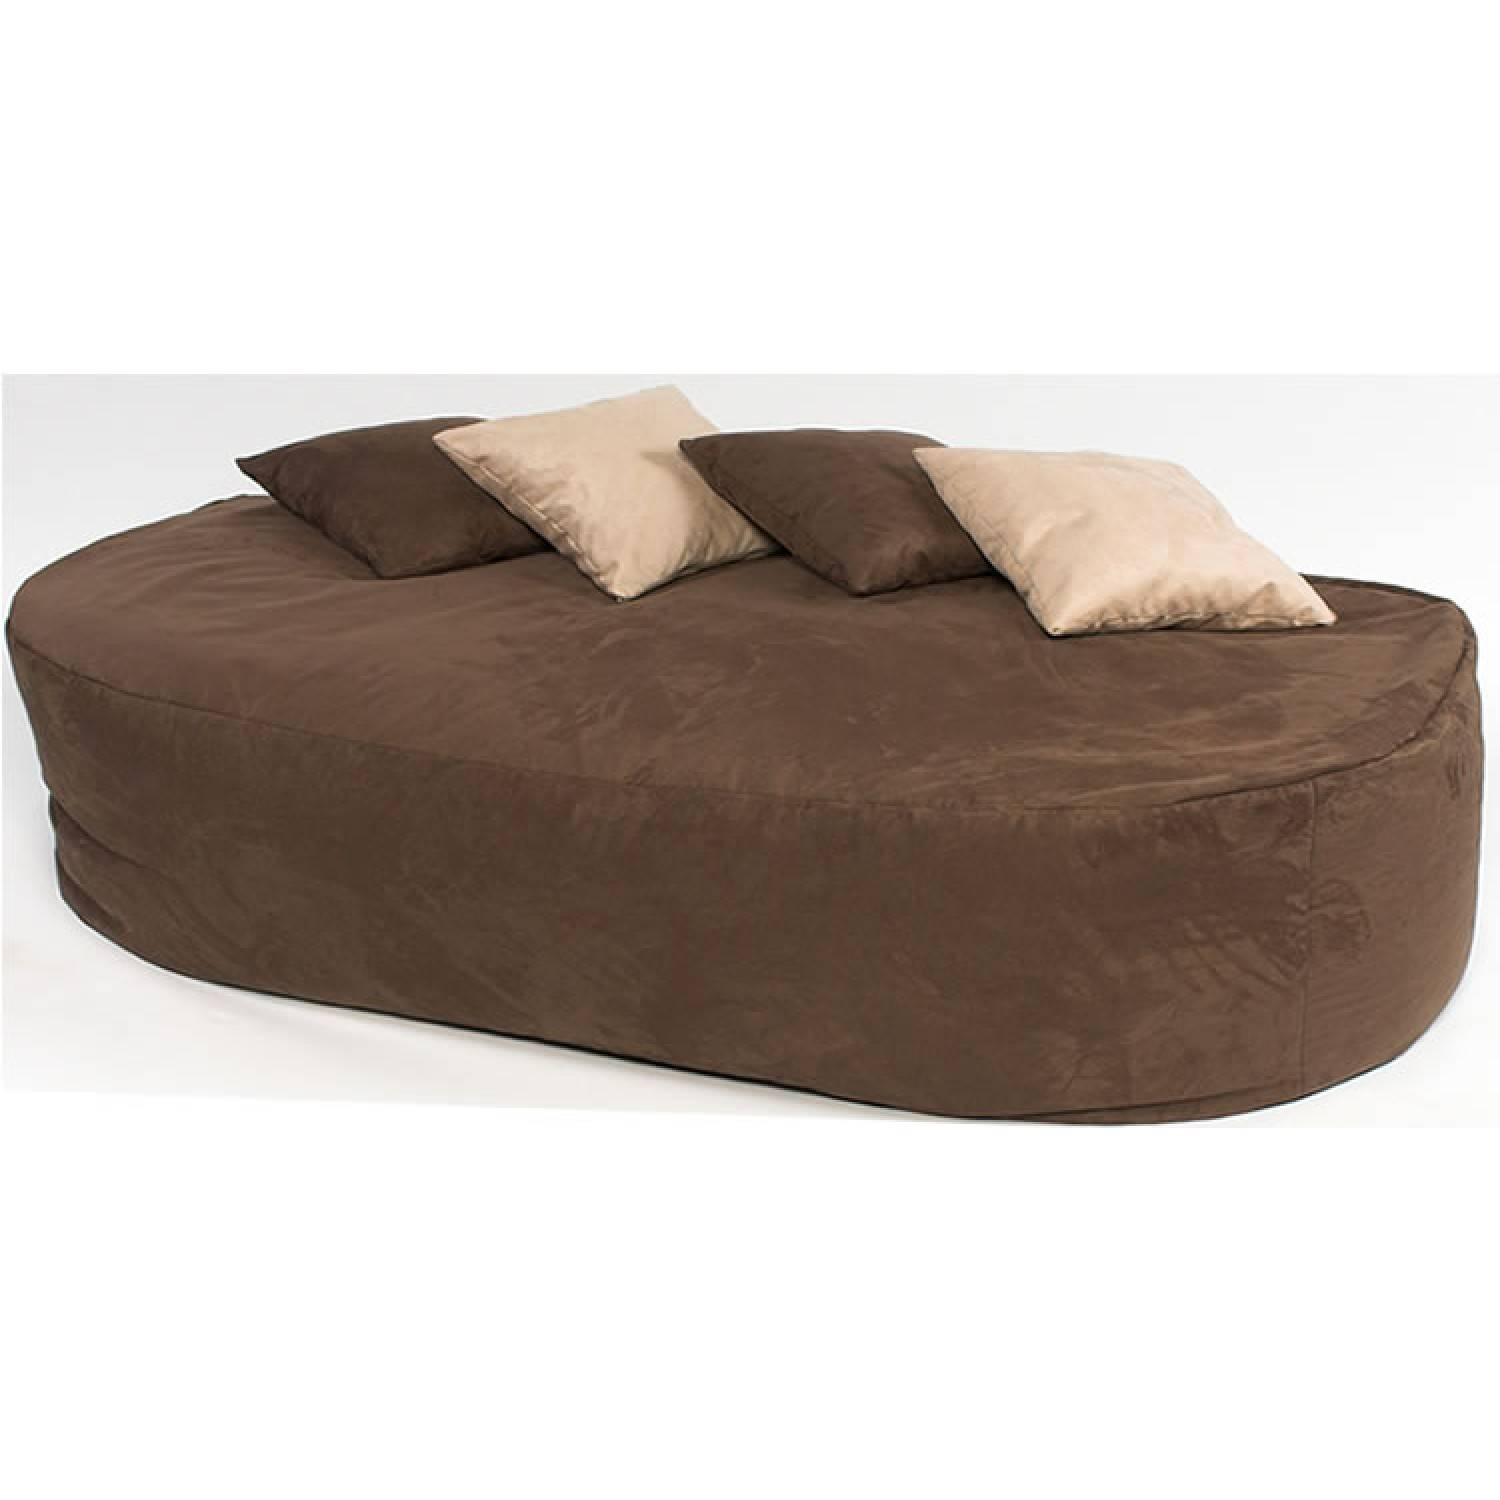 6 Ft Bed Sofa Faux Suede with regard to Faux Suede Sofa Bed (Image 1 of 25)